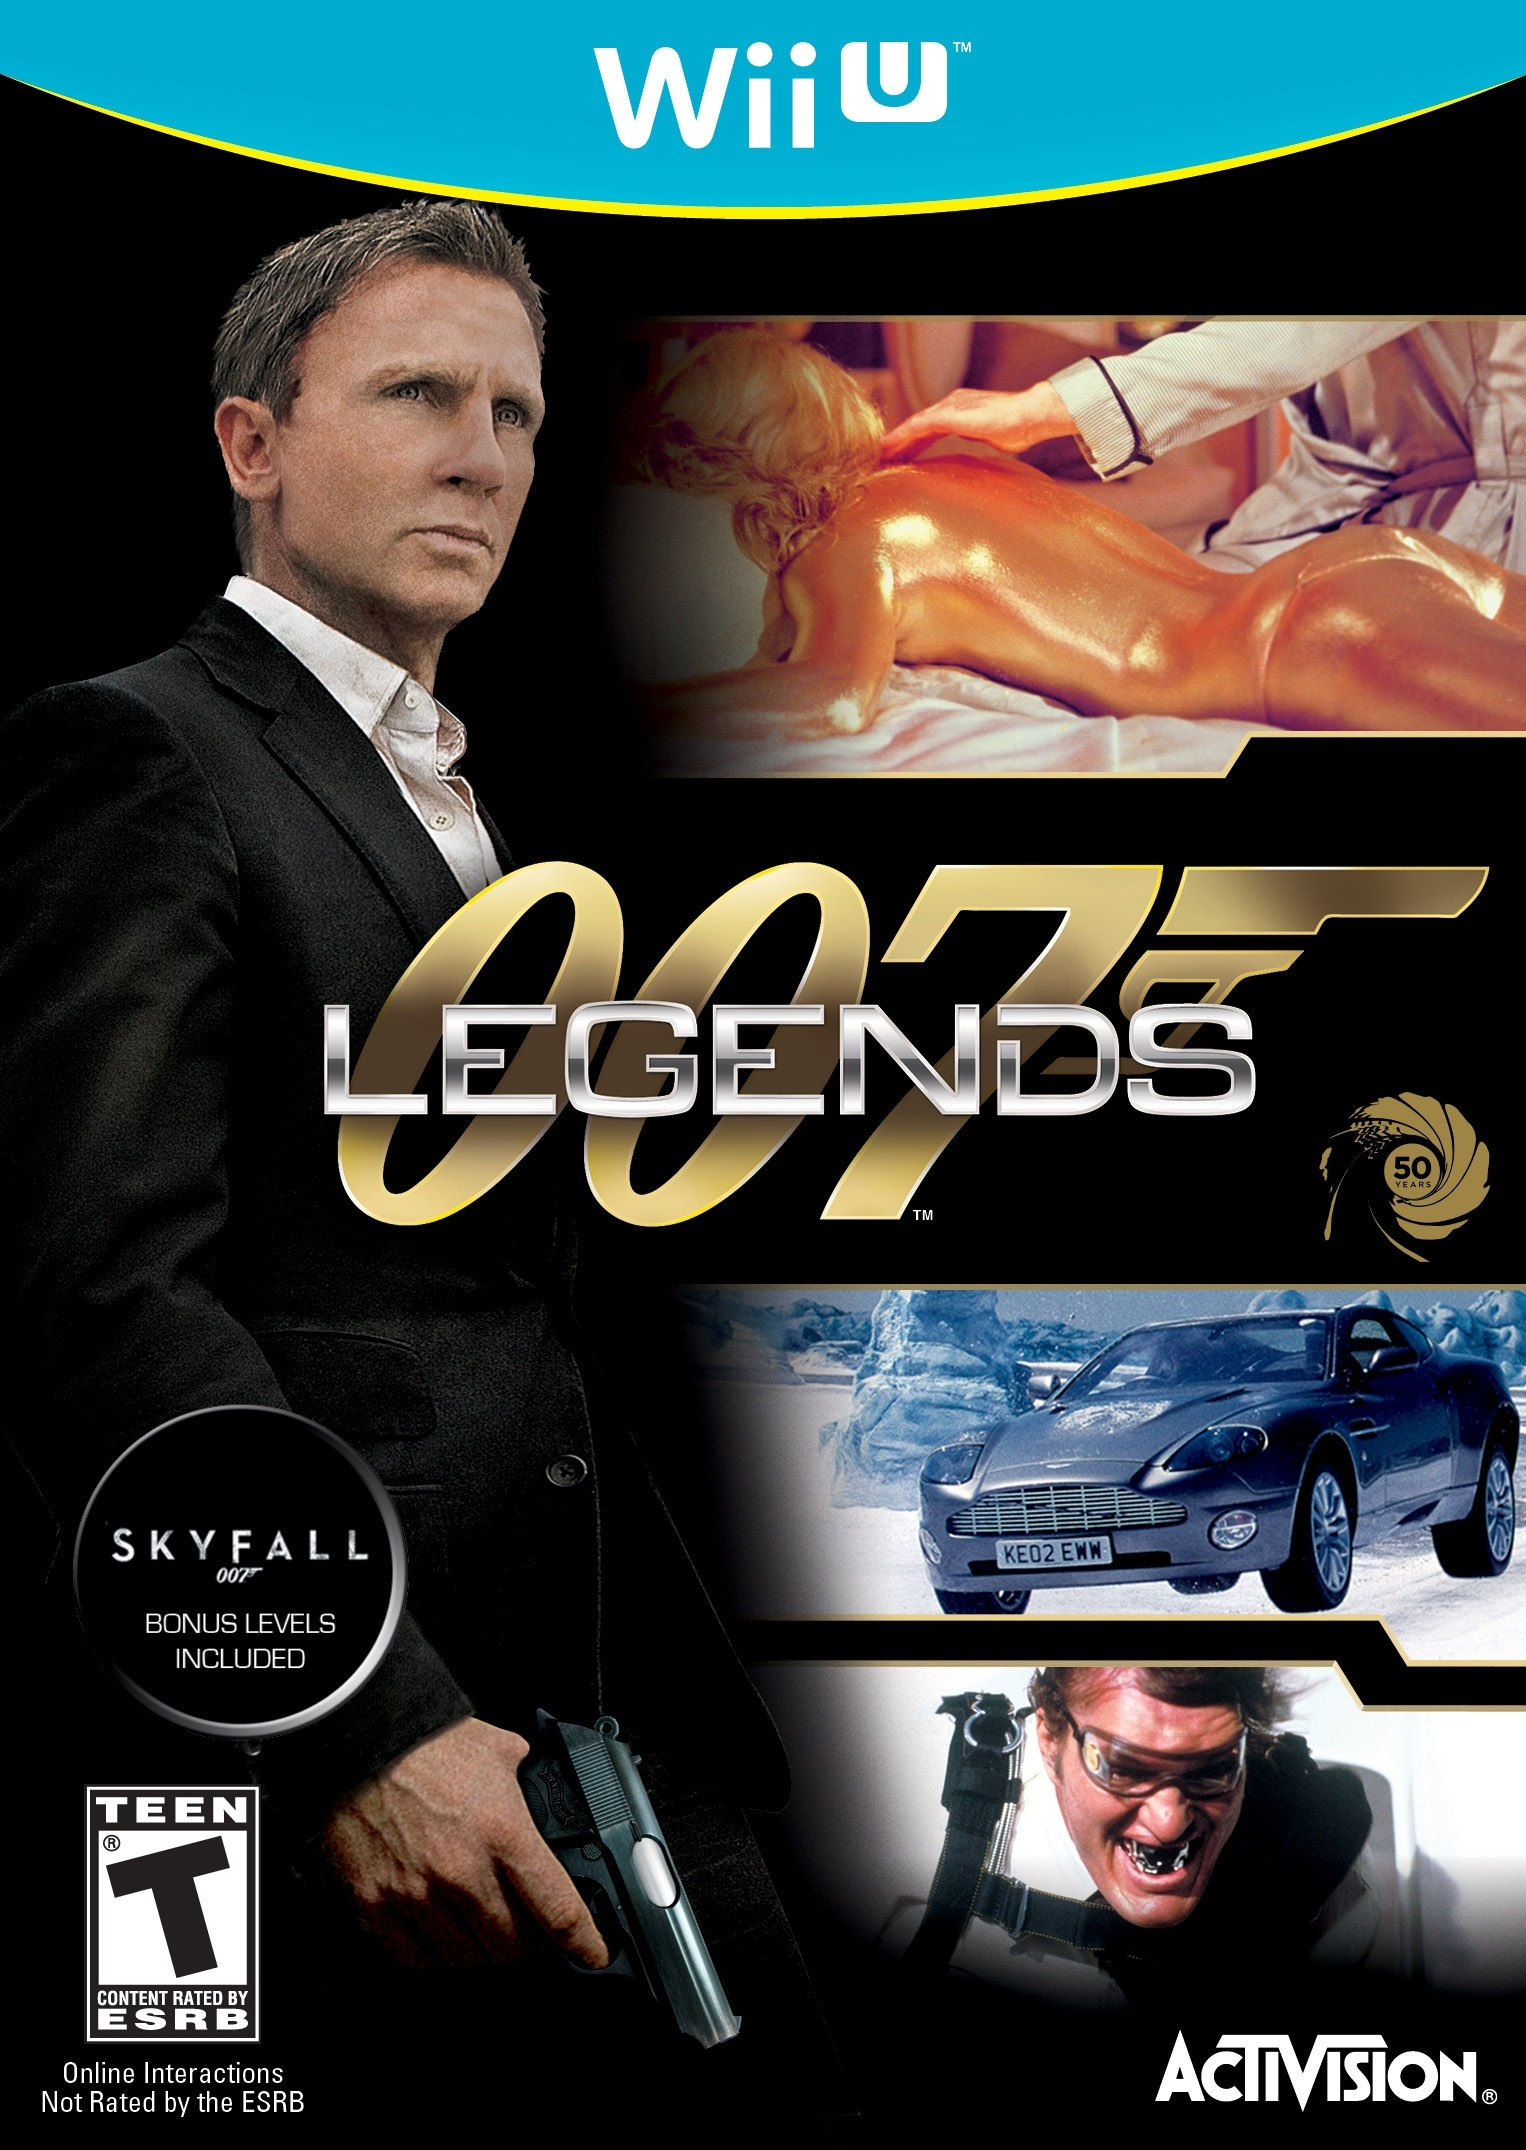 007 Legends/Wii U